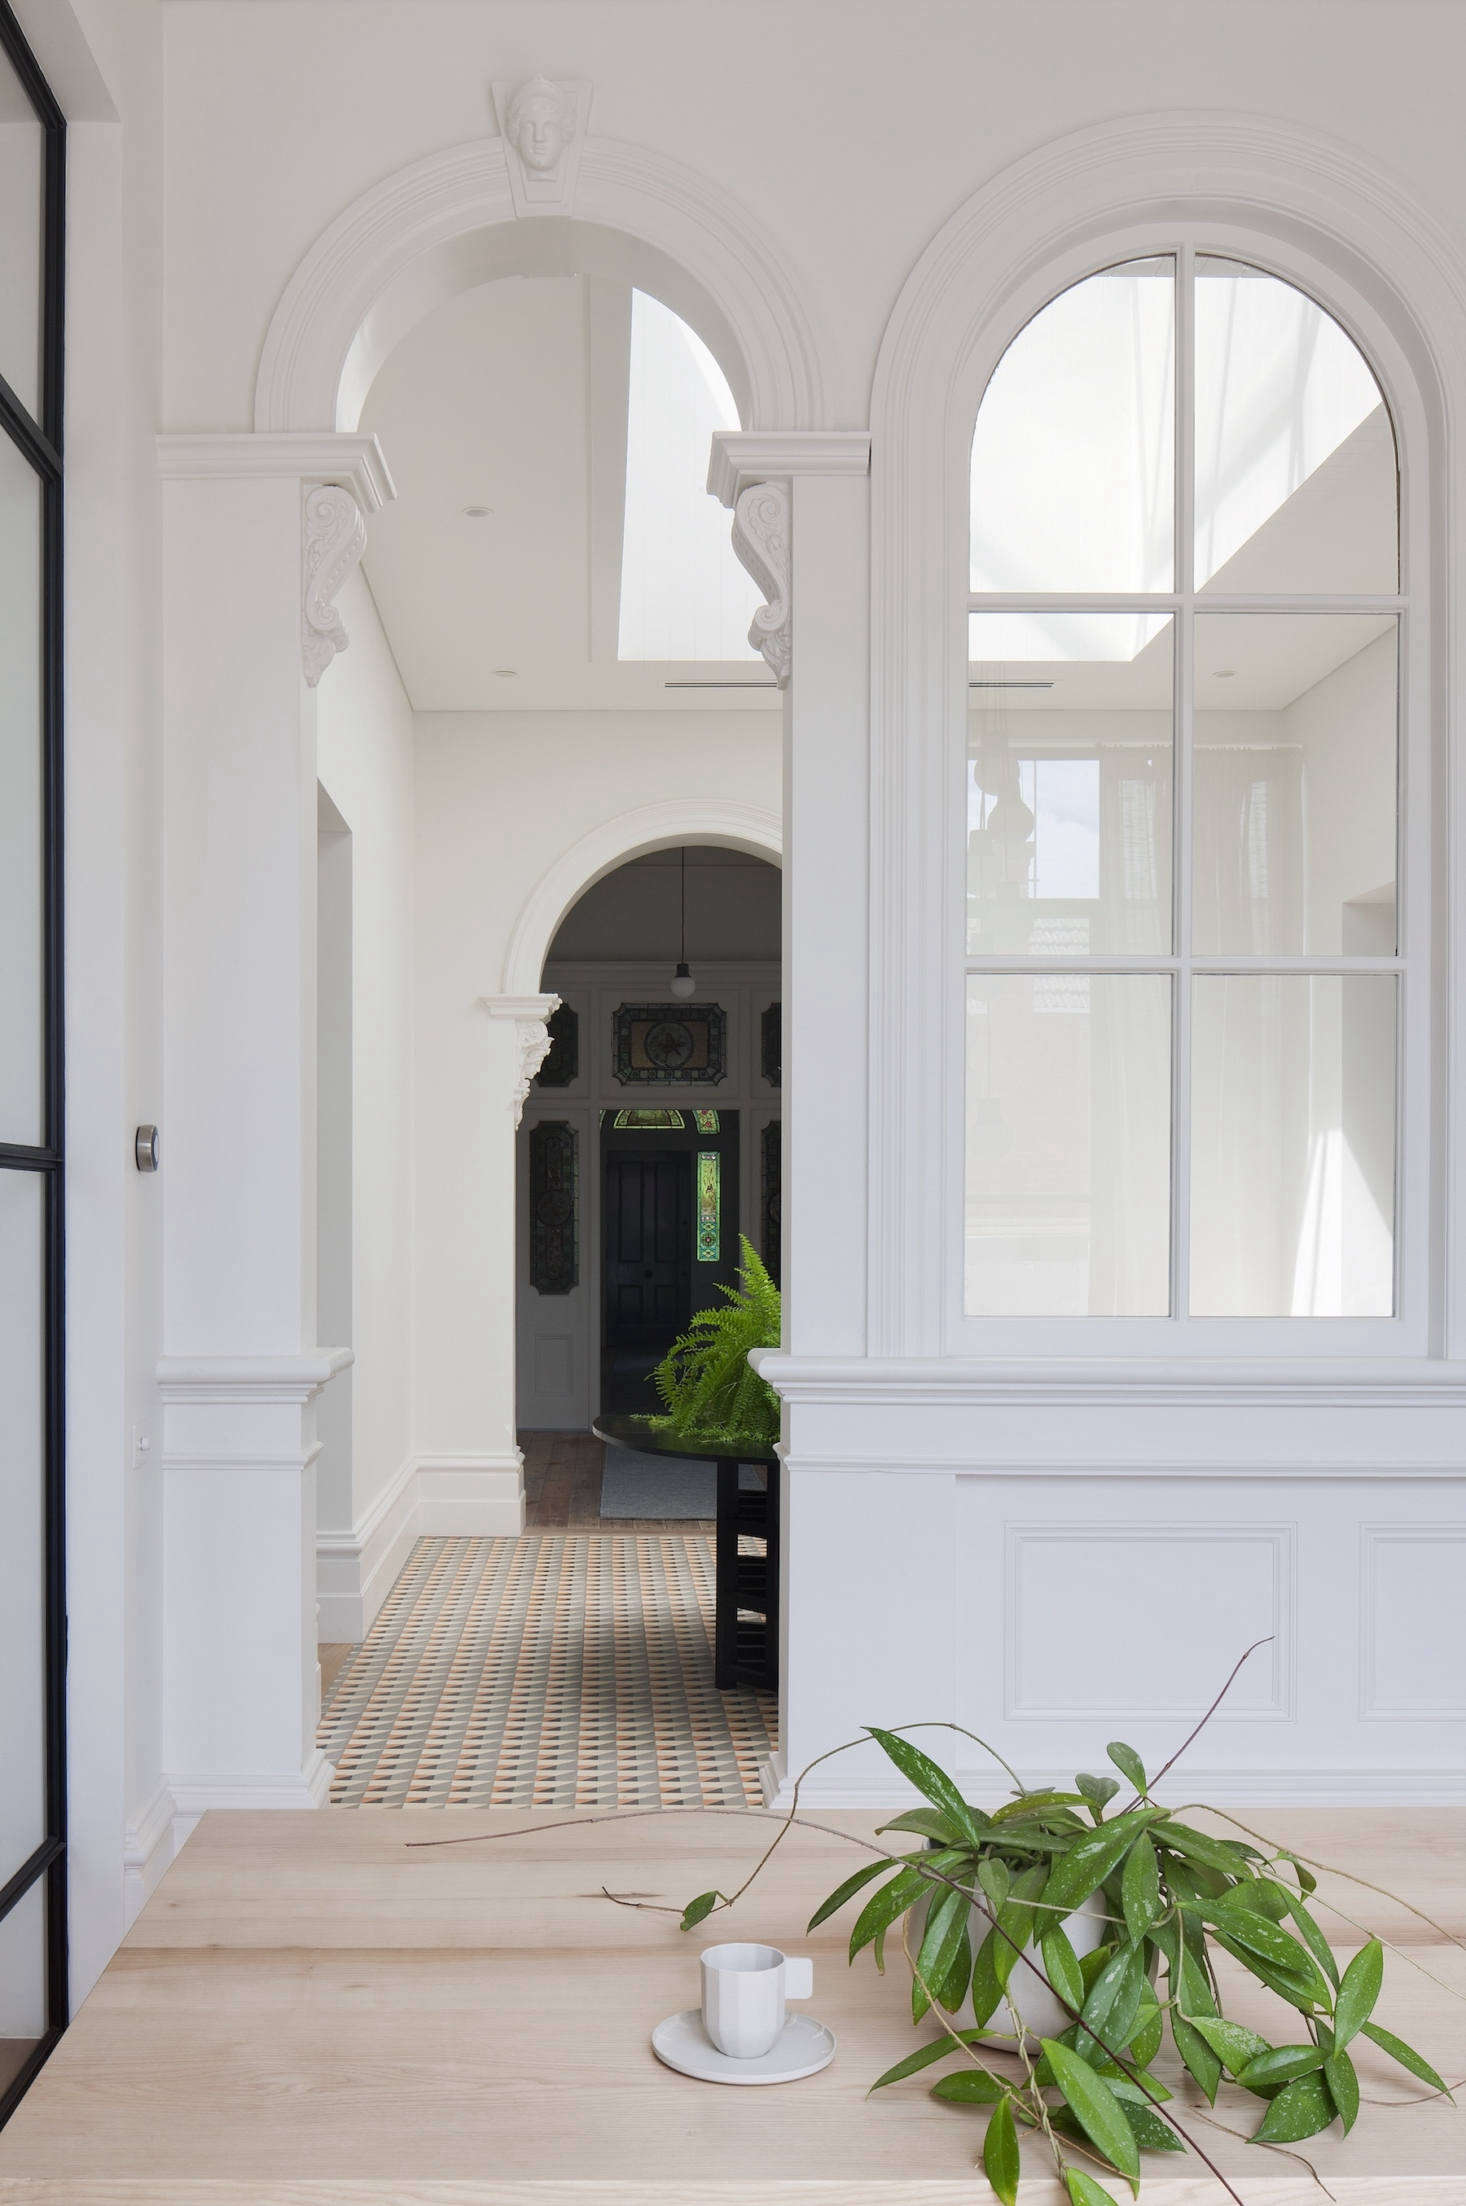 The original decorative archways lead from the foyer to the dining room.